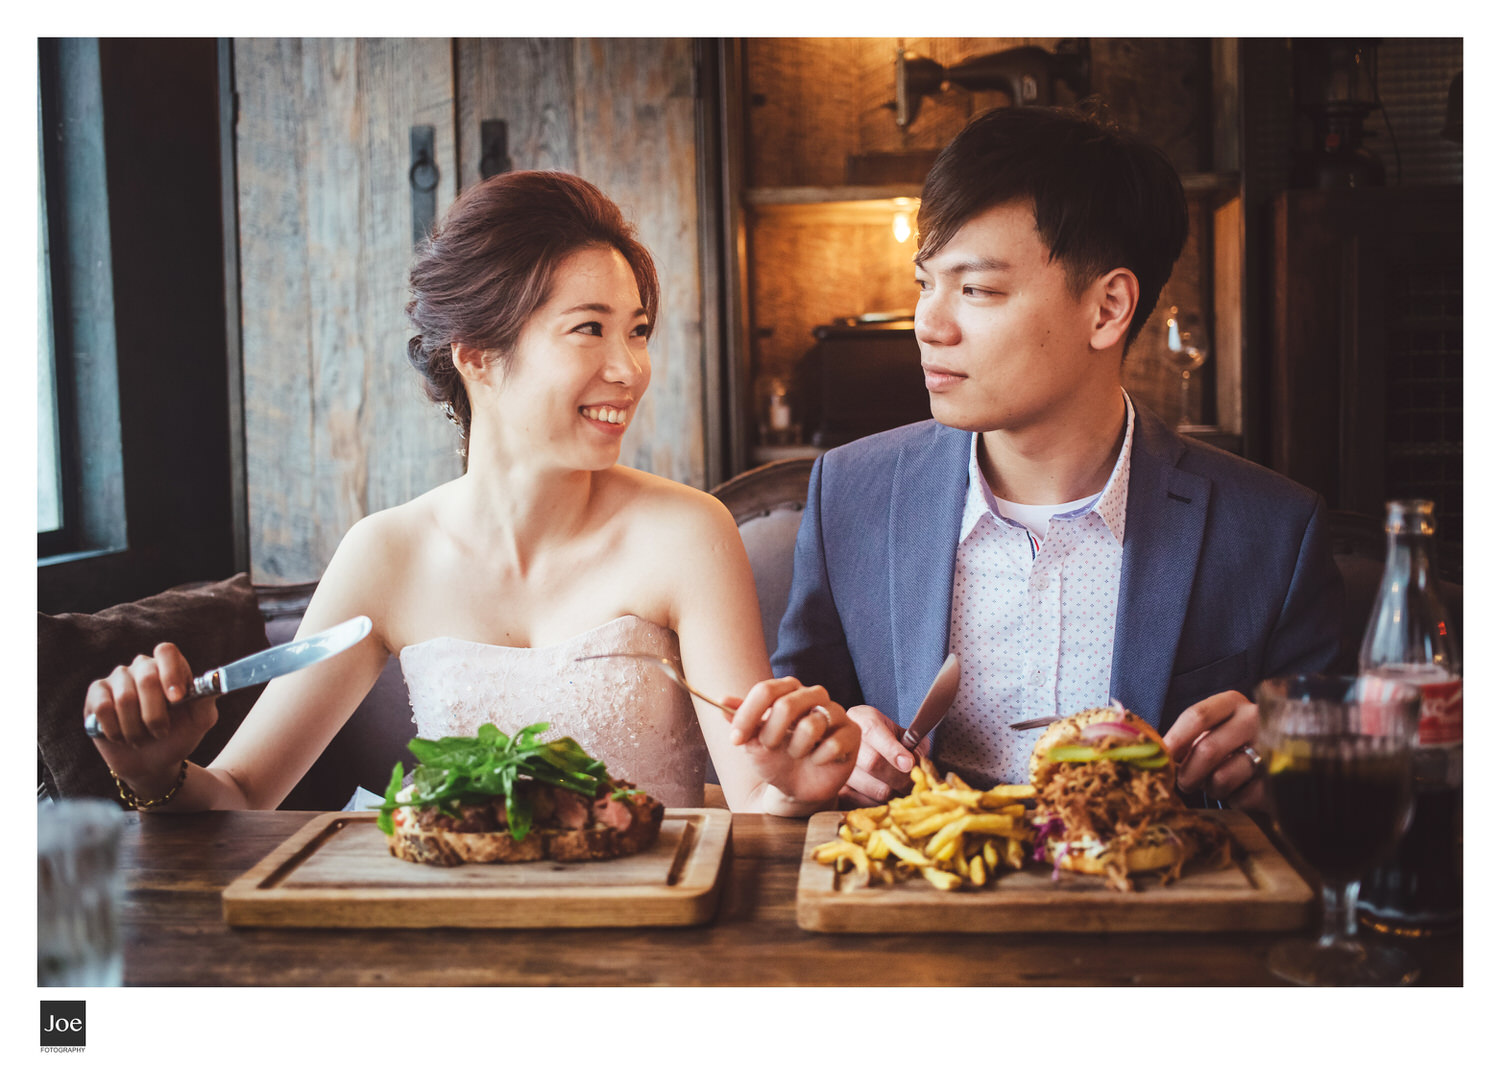 joe-fotography-33-bali-seminyak-the-bistot-pre-wedding-amelie.jpg